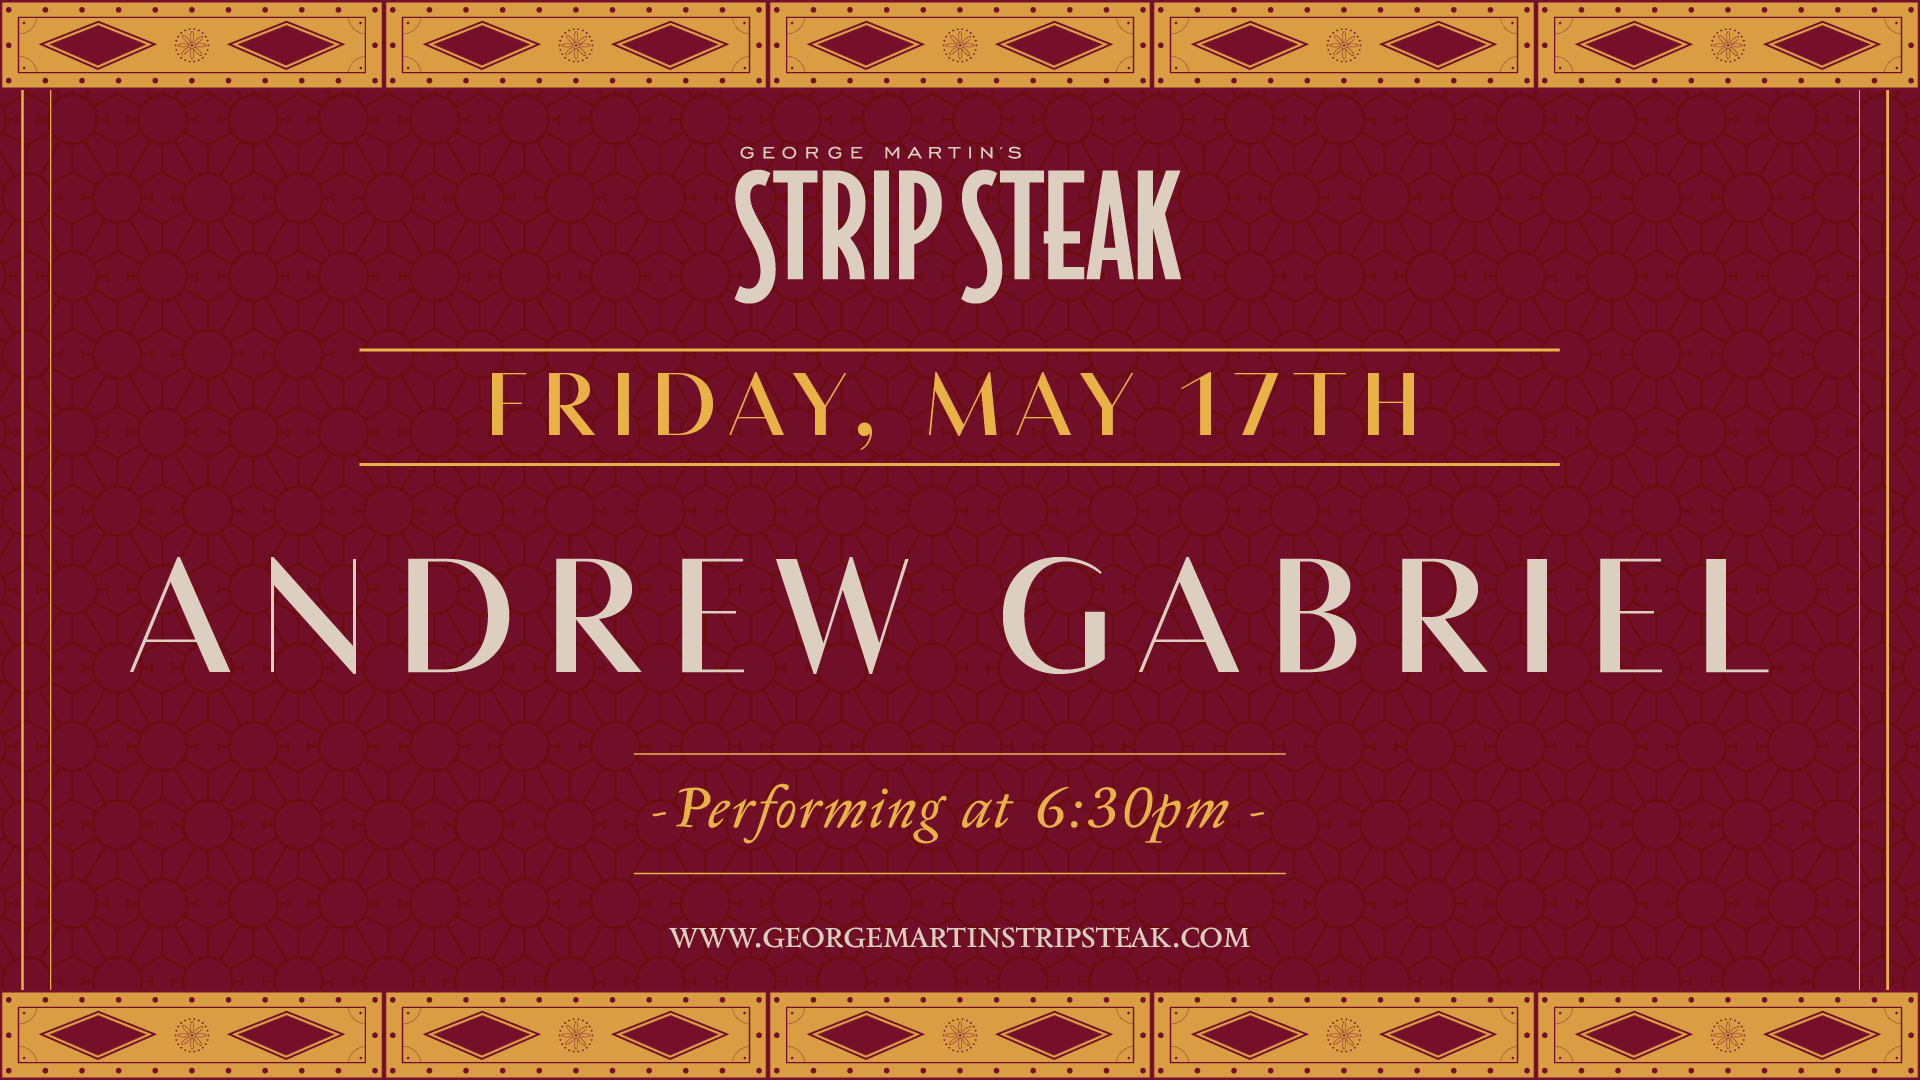 Flyer for live music with Andrew Gabriel at 6:30pm